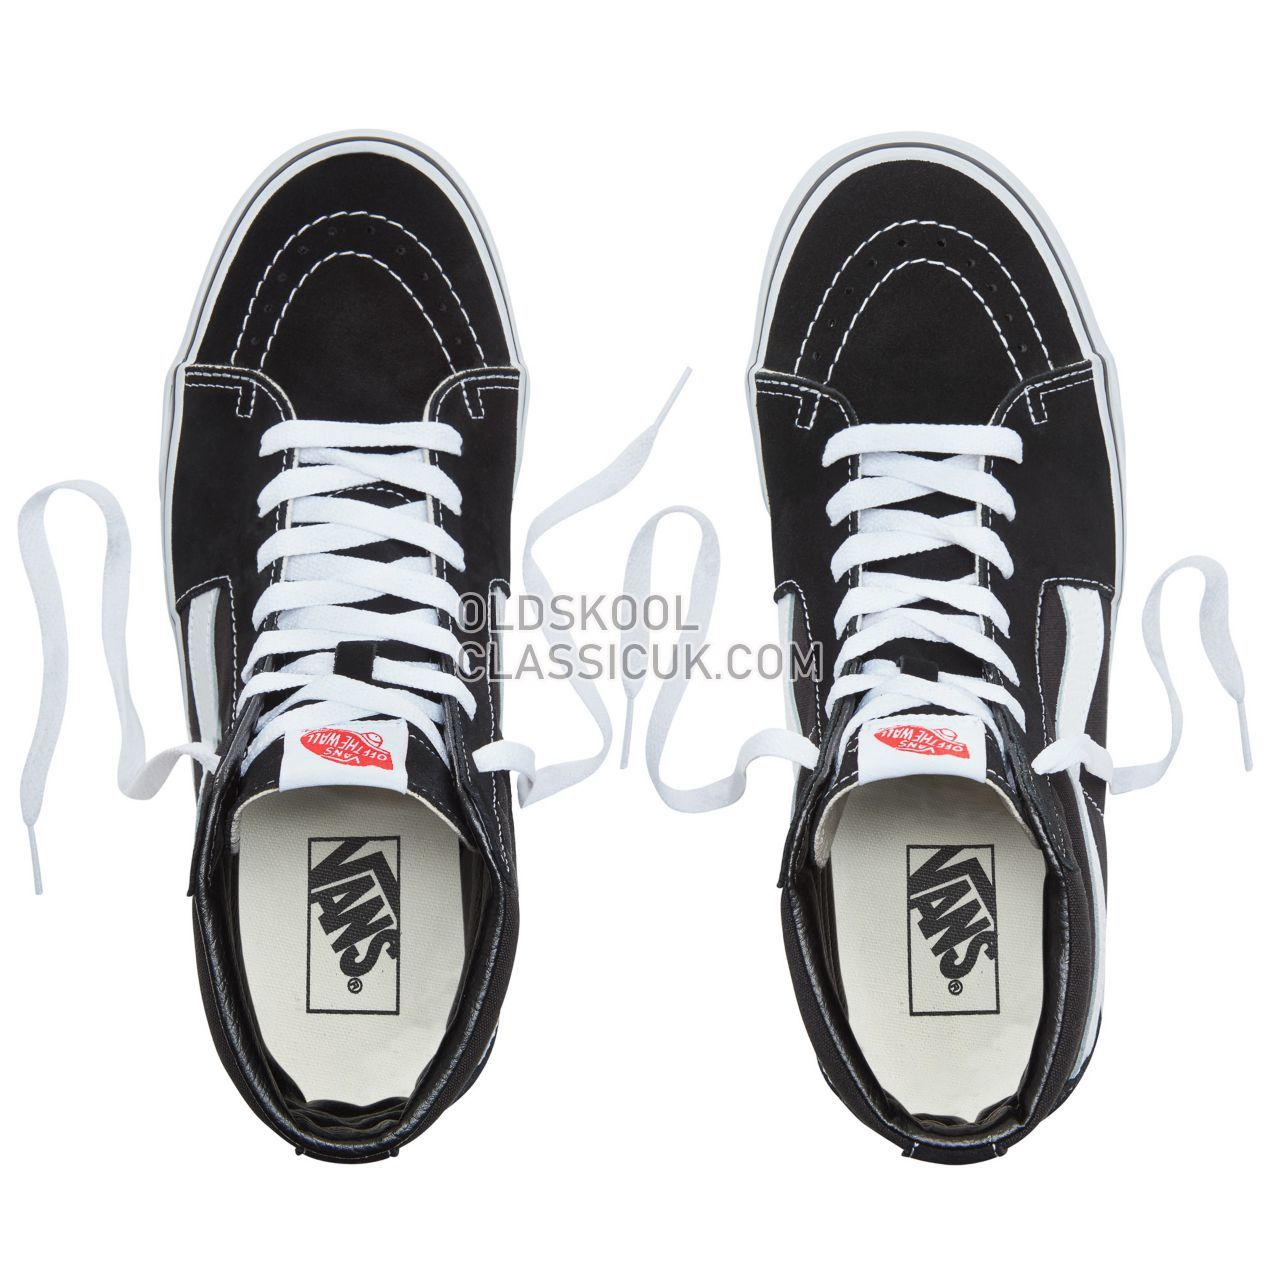 Vans Sk8-Hi Sneakers Mens Black VN000D5IB8C Shoes